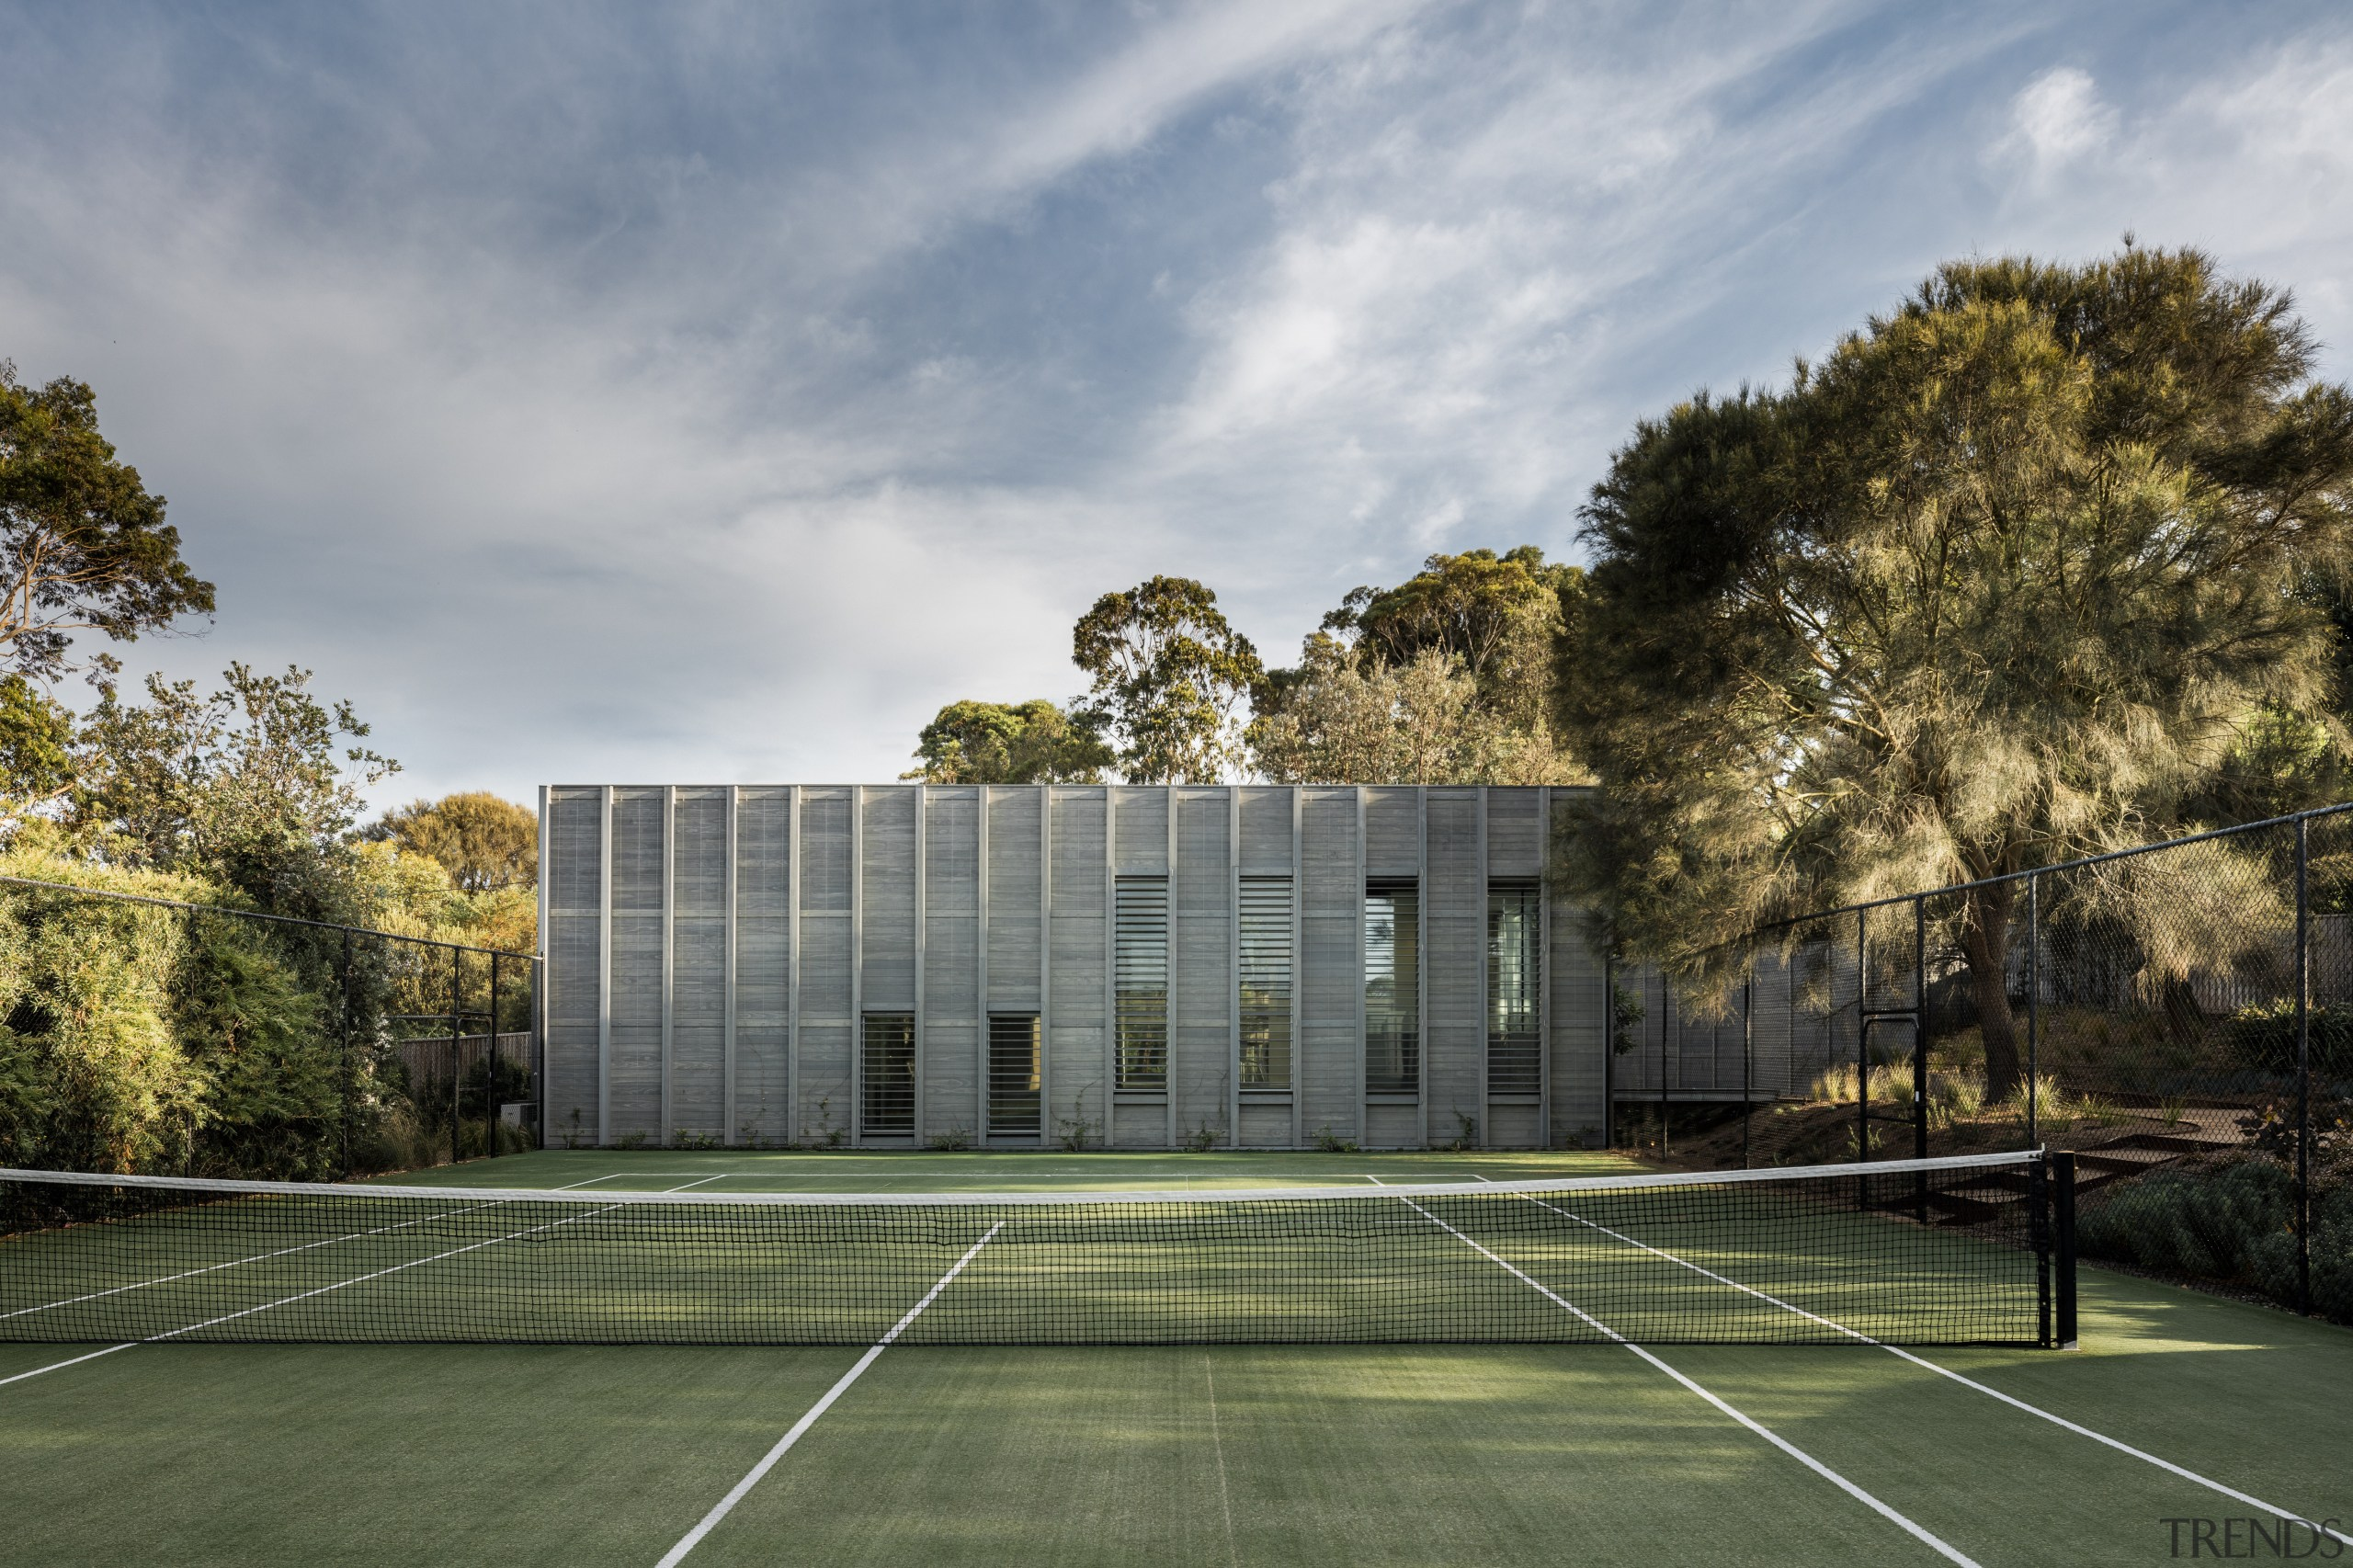 For this understated guest house, automated shutters provide architecture, area, building, campus, cloud, corporate headquarters, daytime, estate, grass, home, house, landscape, plant, real estate, residential area, sky, sport venue, structure, sunlight, tree, gray